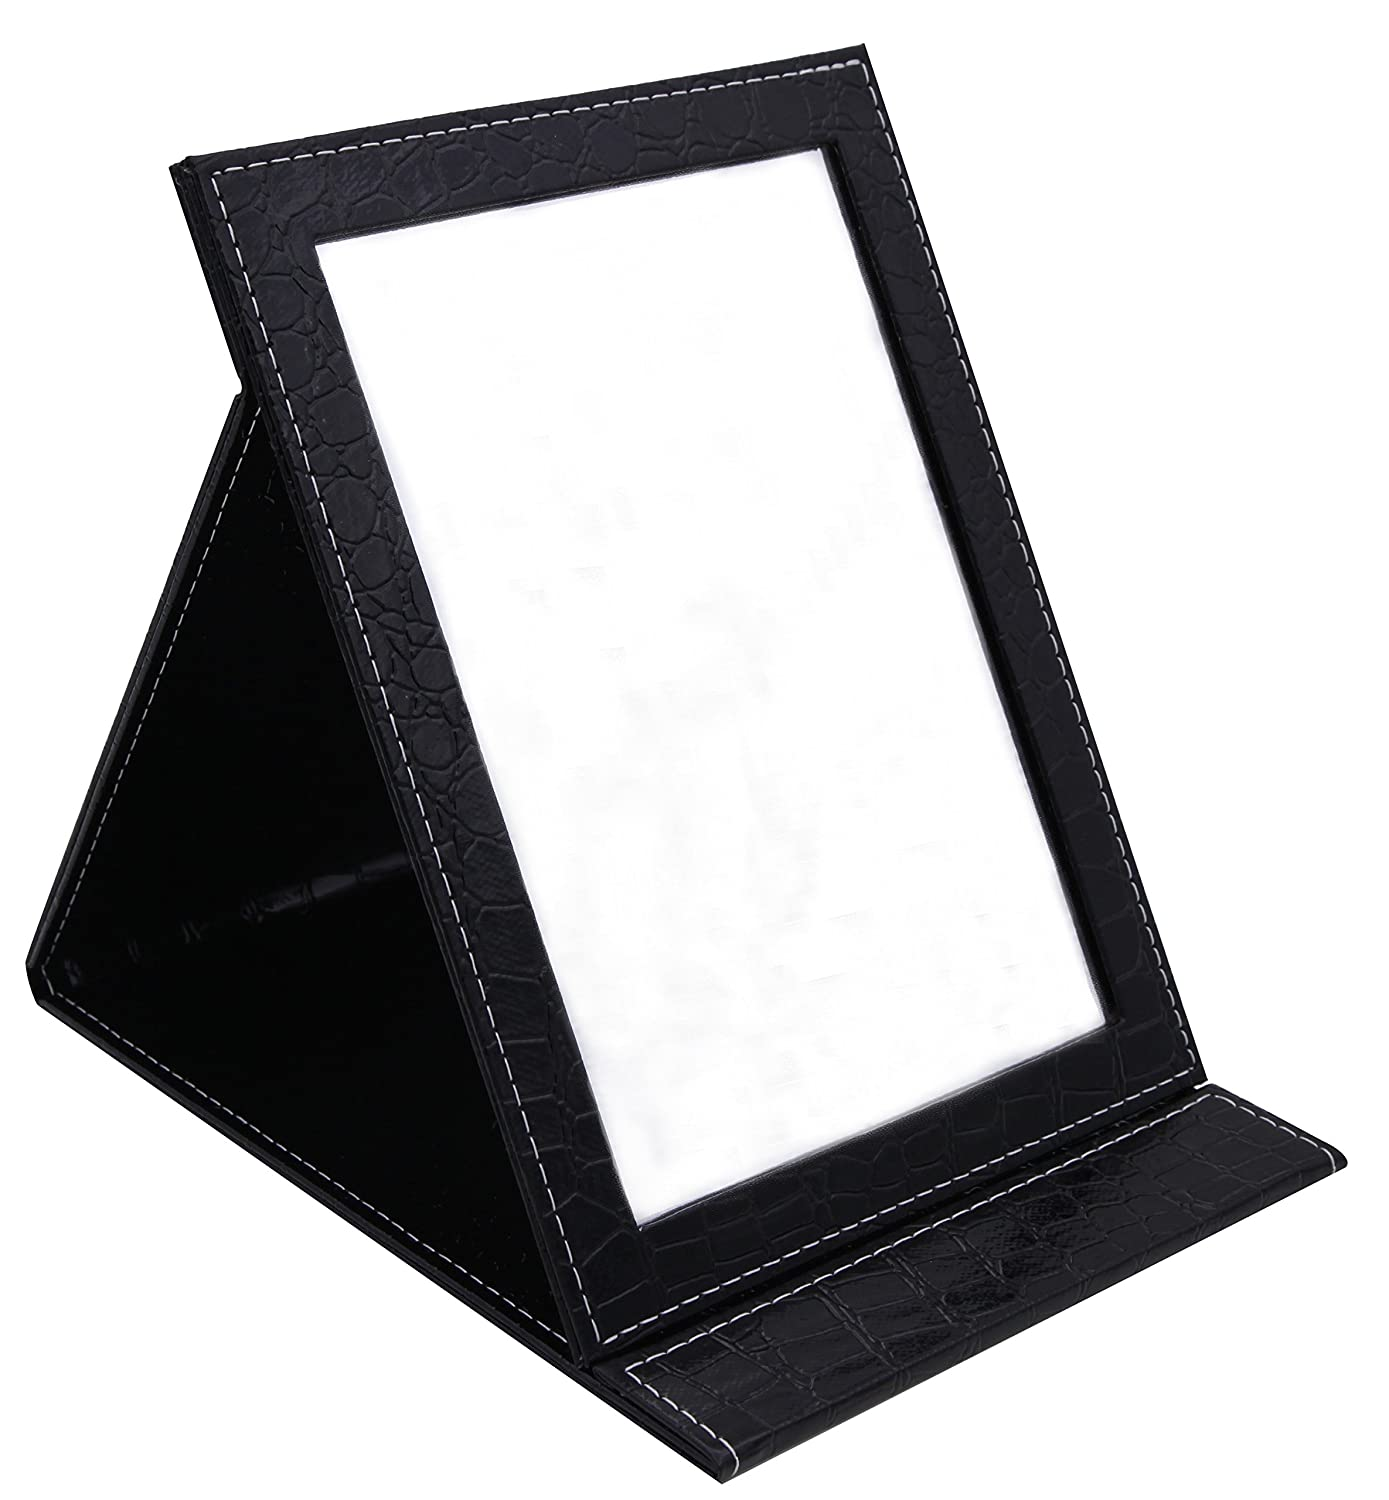 Famiry Large Portable Folding Mirror with Standing for Making Up, Black